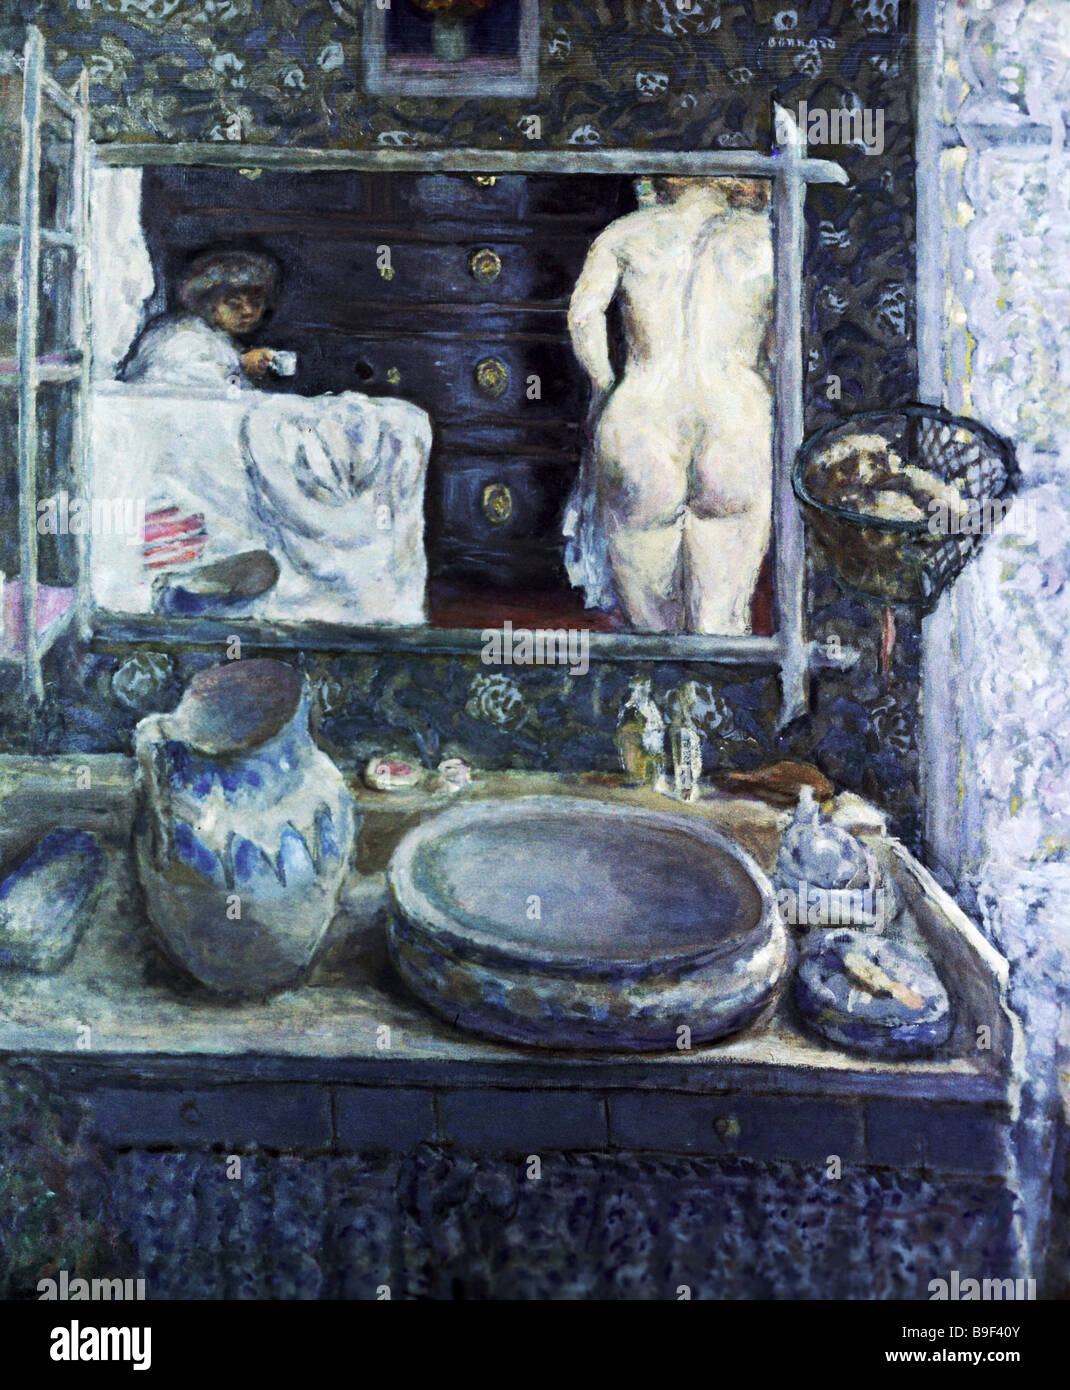 Reproduction of the painting The Mirror above the Sink by Pierre Bonnard 1867 1947 the Alexander Pushkin Fine Arts - Stock Image